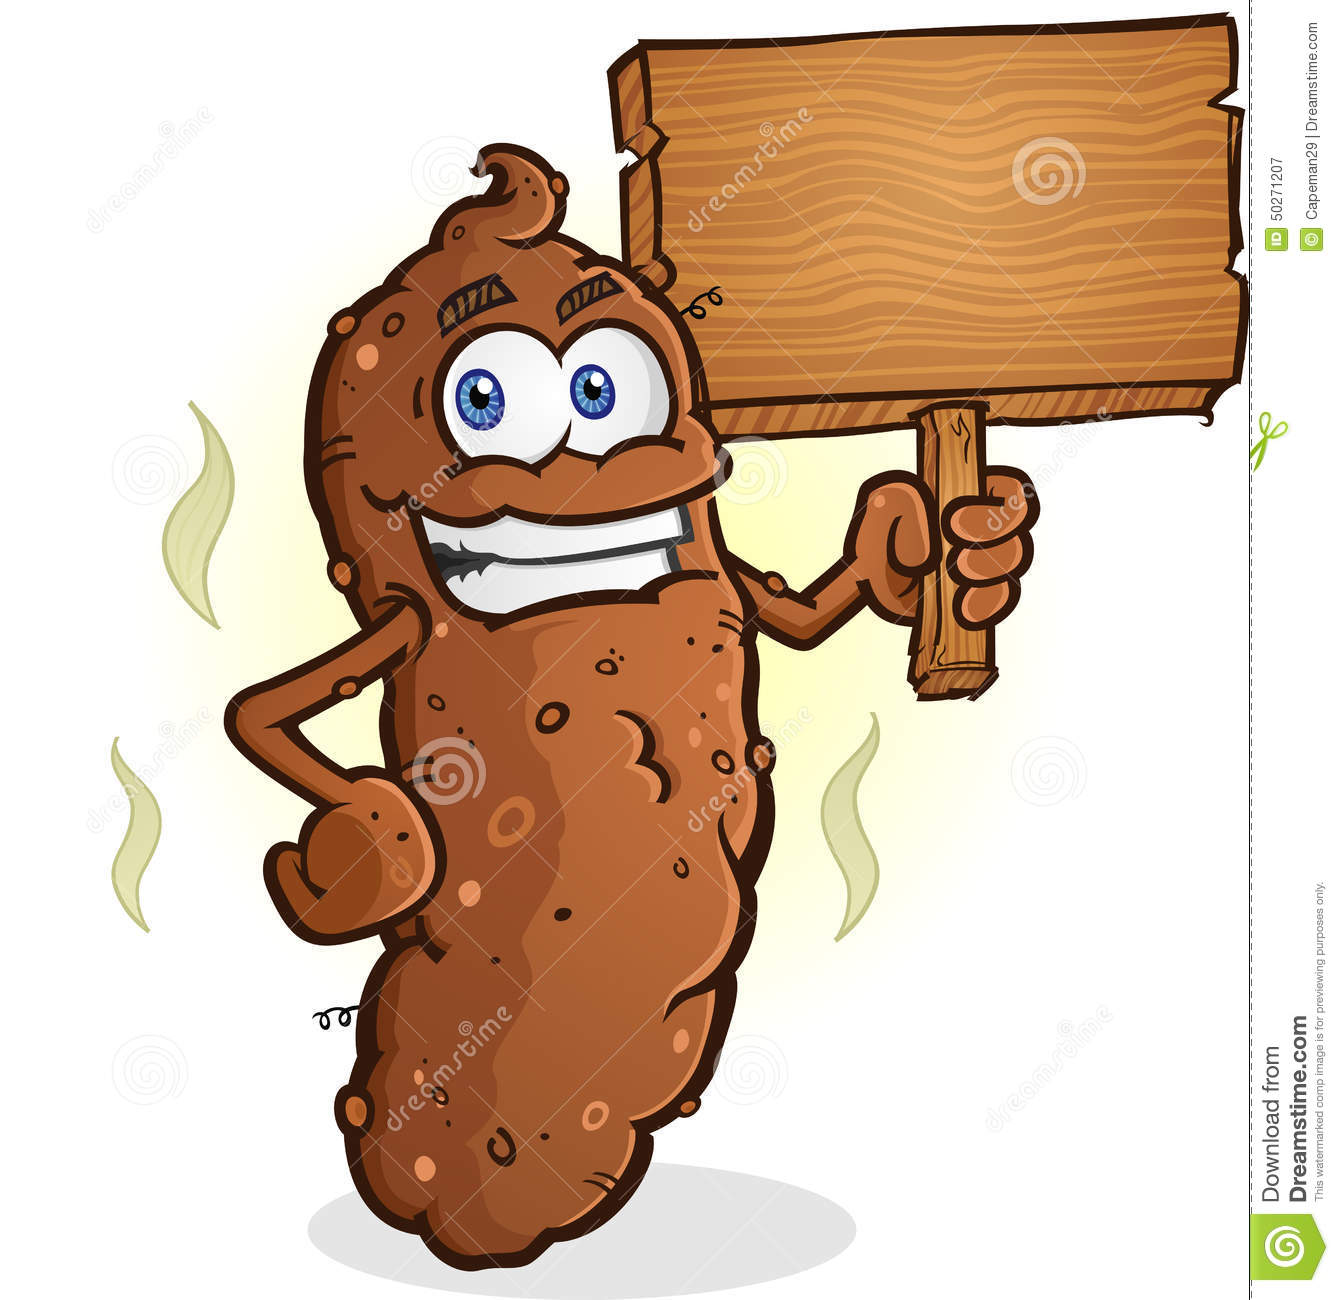 More similar stock images of ` Poop Cartoon Character Holding a Blank ...